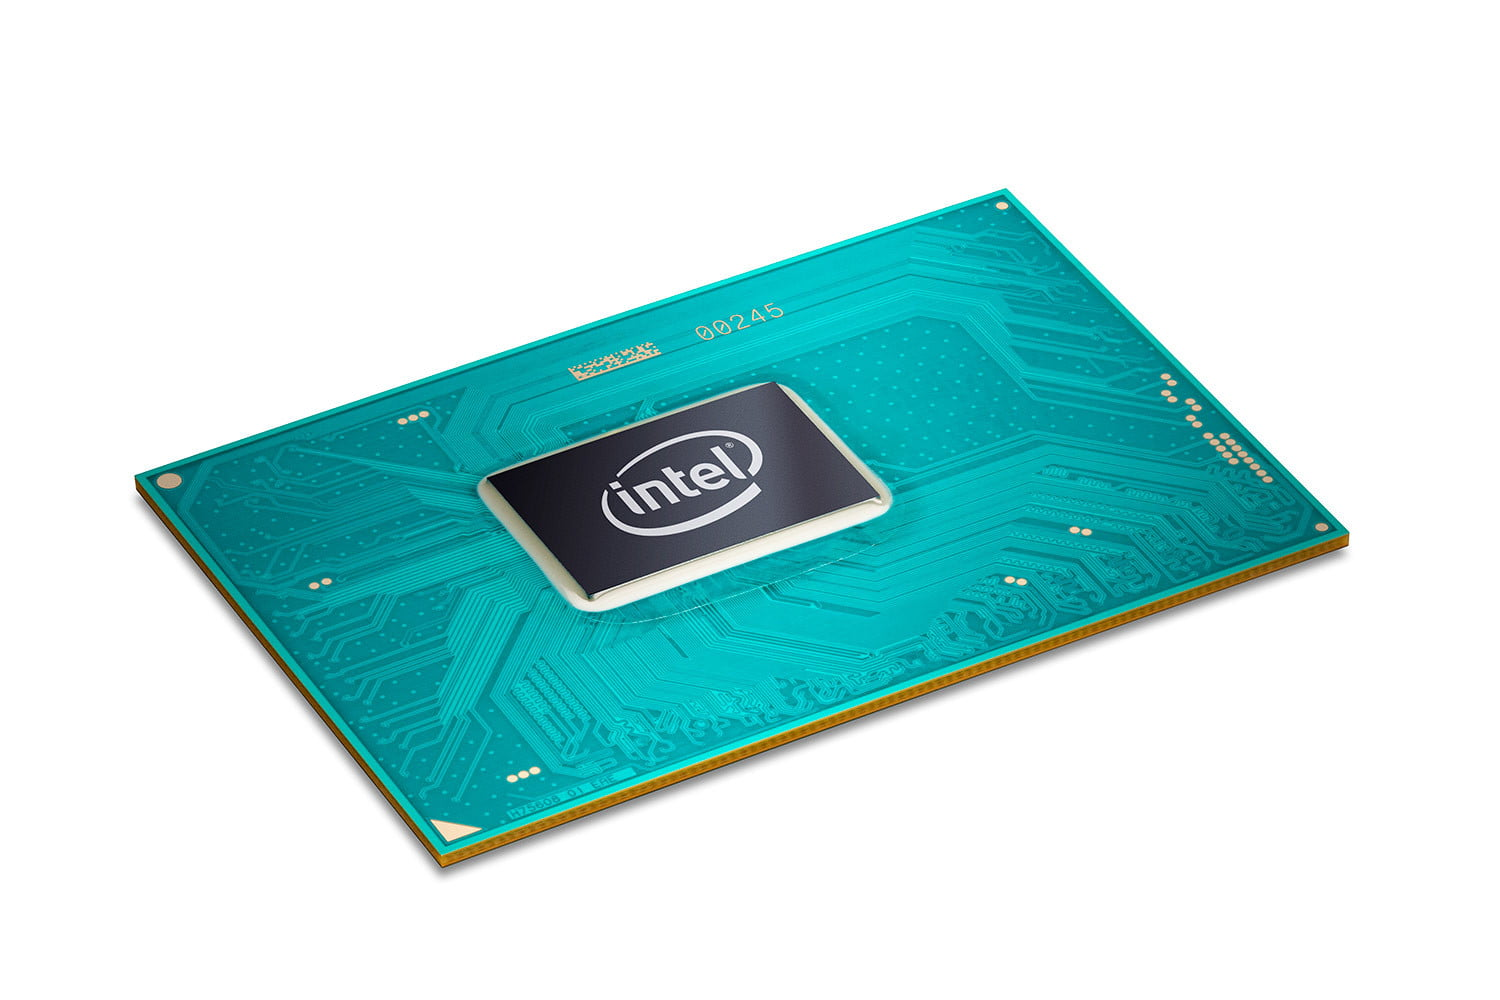 7th generation intel core ces 2017 kby lake h front persp left 05 whitebkg